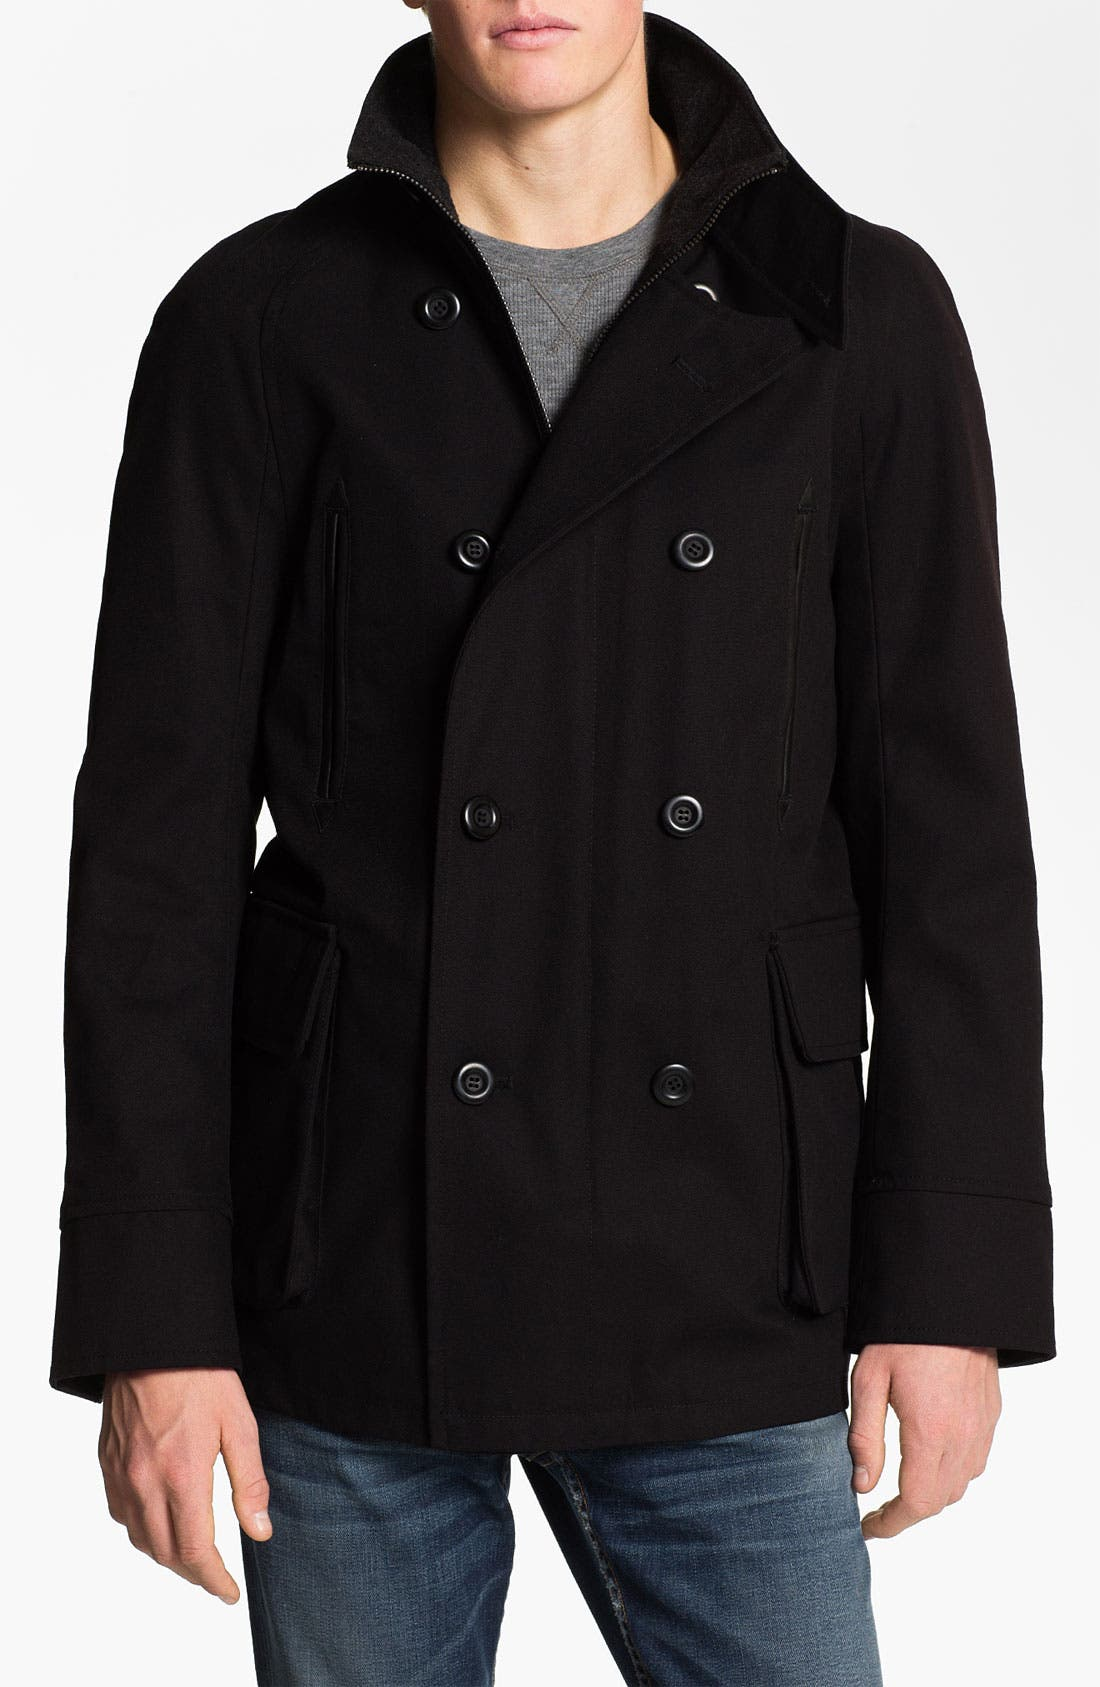 Alternate Image 1 Selected - PLECTRUM by Ben Sherman Twill Peacoat